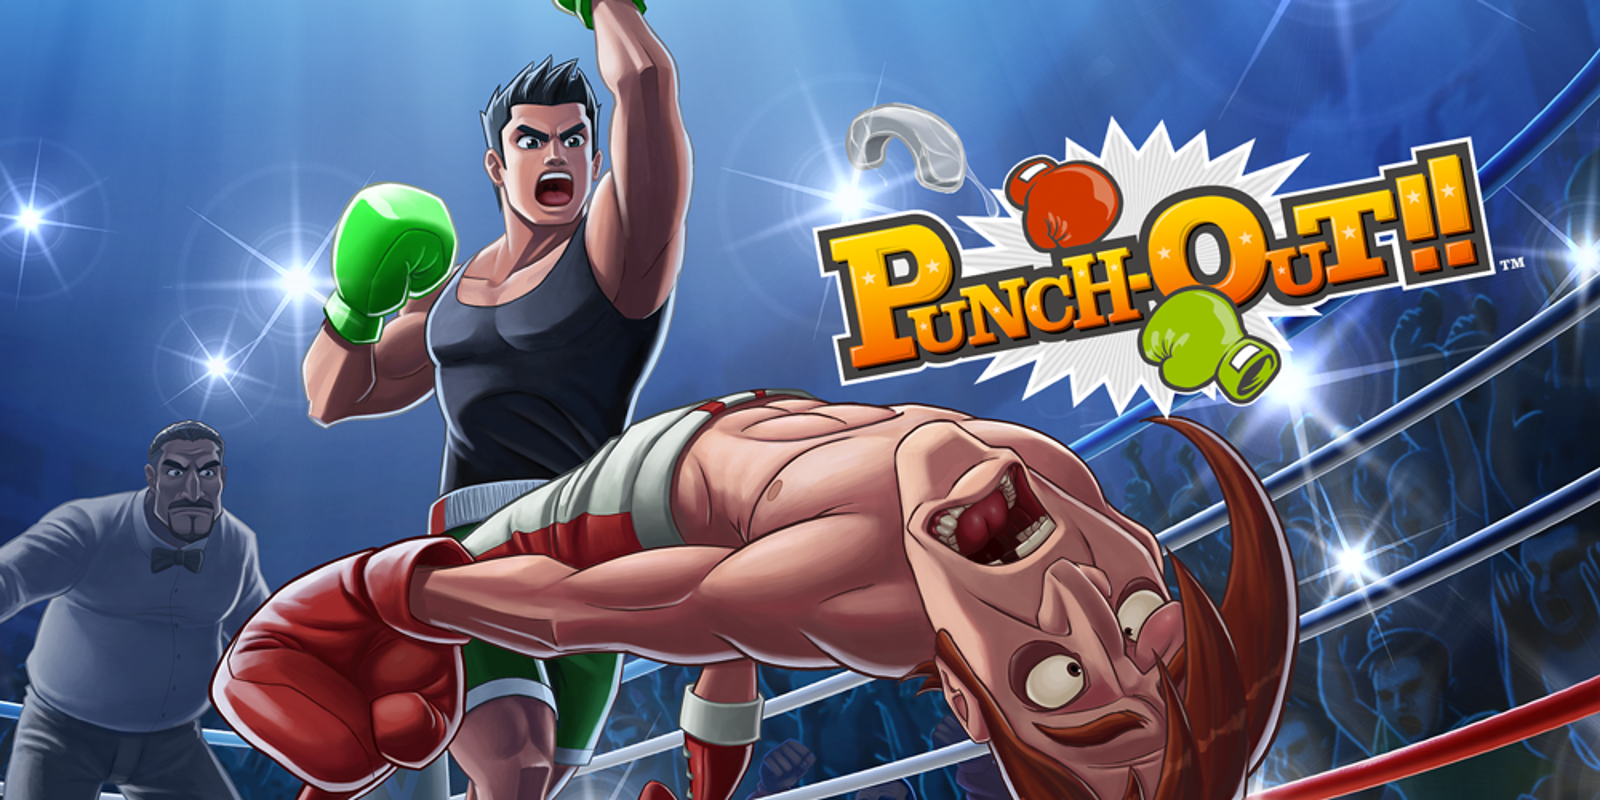 Punch-Out facts and statistics